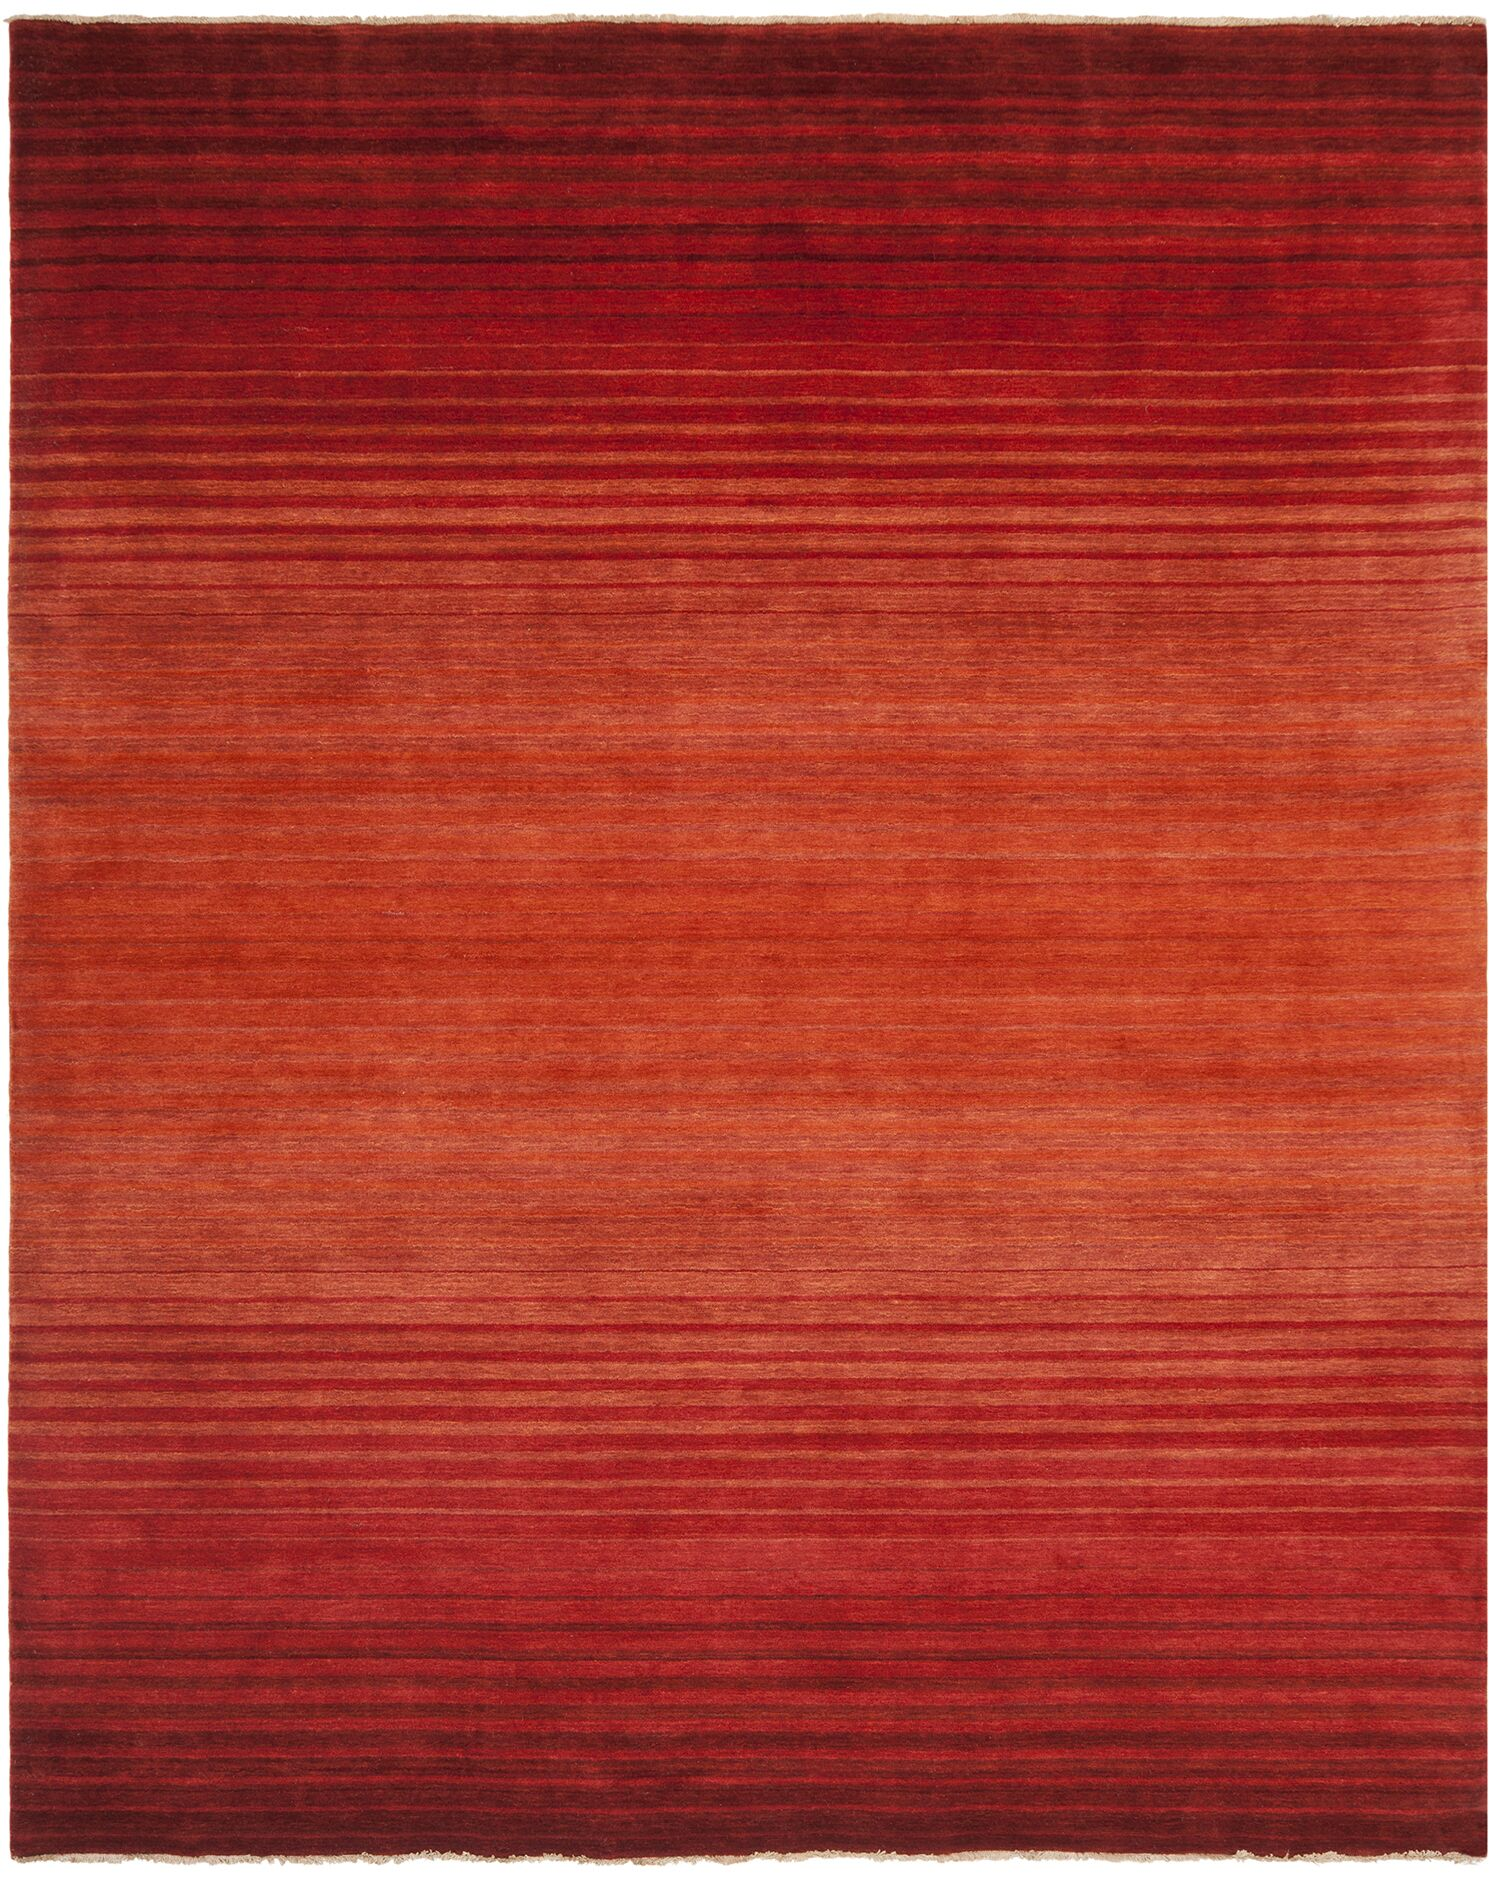 Armstrong Hand-Knotted Rust Area Rug Rug Size: Rectangle 8' x 10'